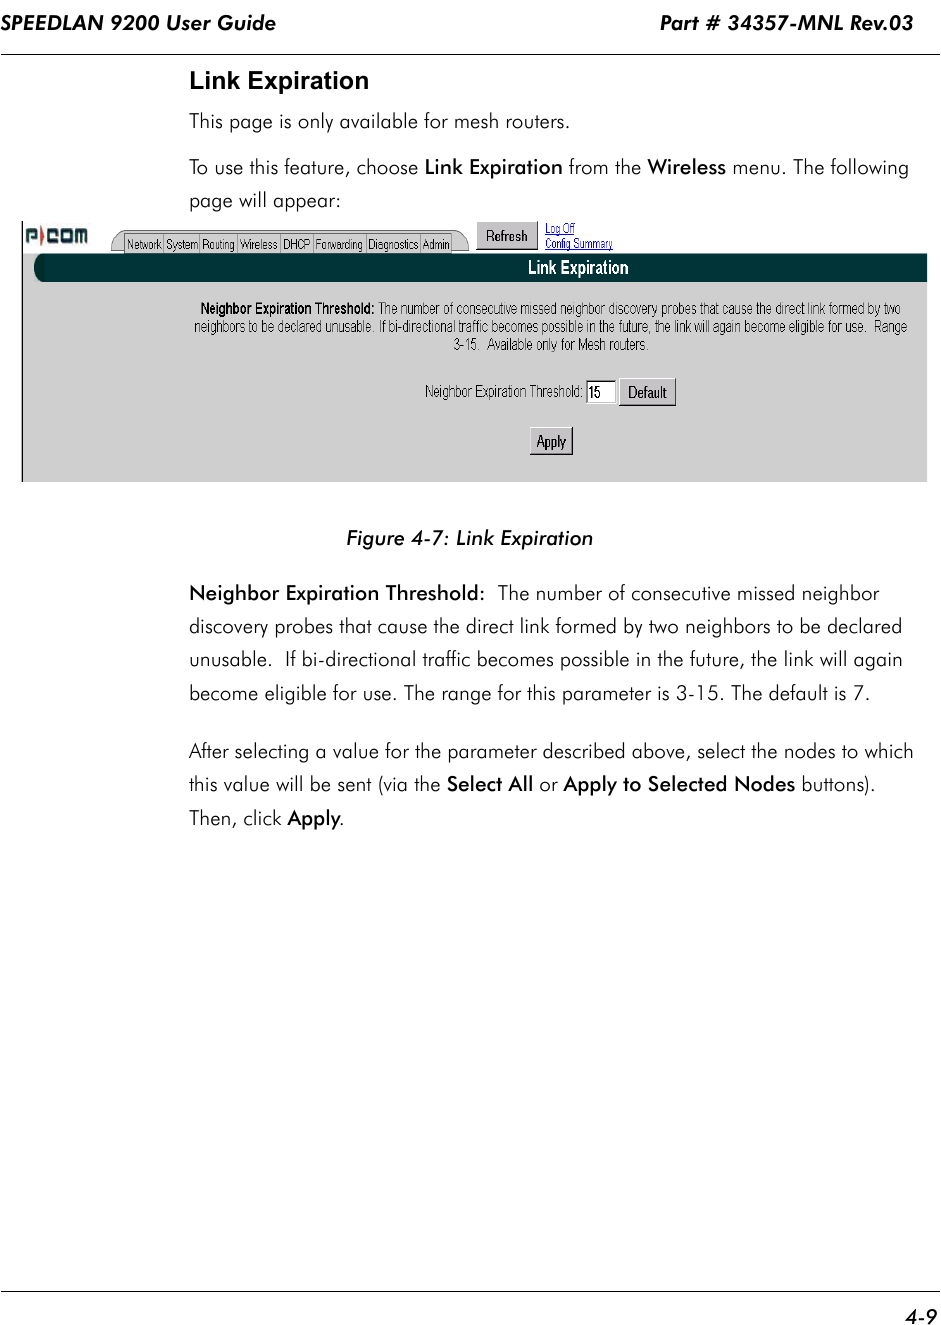 SPEEDLAN 9200 User Guide                                                              Part # 34357-MNL Rev.03      4-9                                                                                                                                                              Link ExpirationThis page is only available for mesh routers.To use this feature, choose Link Expiration from the Wireless menu. The following page will appear:Figure 4-7: Link ExpirationNeighbor Expiration Threshold:  The number of consecutive missed neighbor discovery probes that cause the direct link formed by two neighbors to be declared unusable.  If bi-directional traffic becomes possible in the future, the link will again become eligible for use. The range for this parameter is 3-15. The default is 7.   After selecting a value for the parameter described above, select the nodes to which this value will be sent (via the Select All or Apply to Selected Nodes buttons). Then, click Apply.